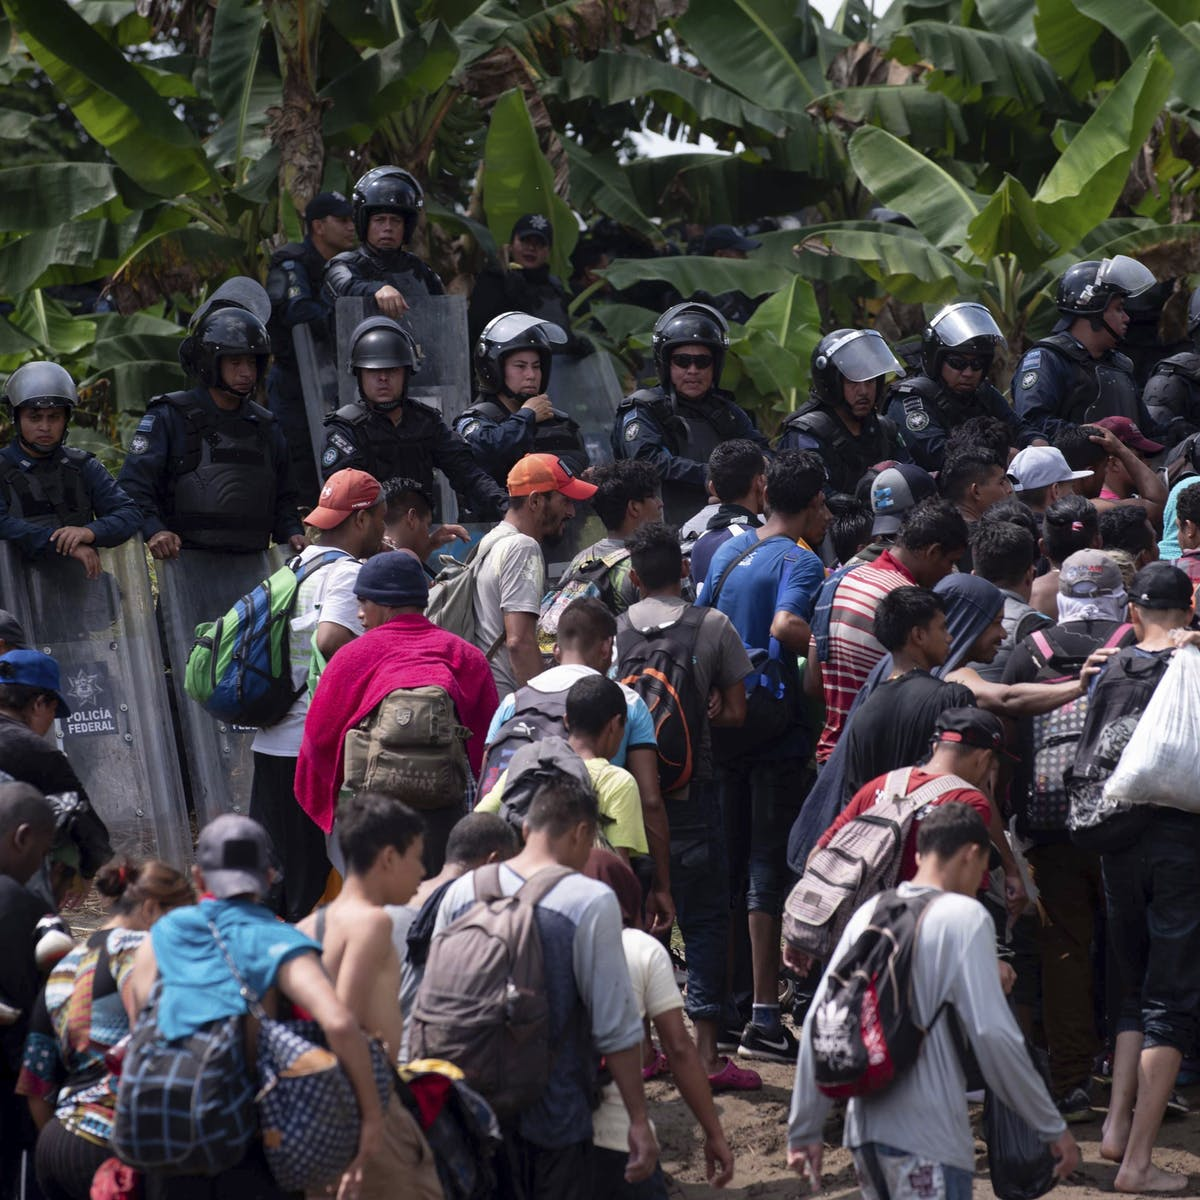 Why does the migrant 'caravan' exist? And how did it come to be?